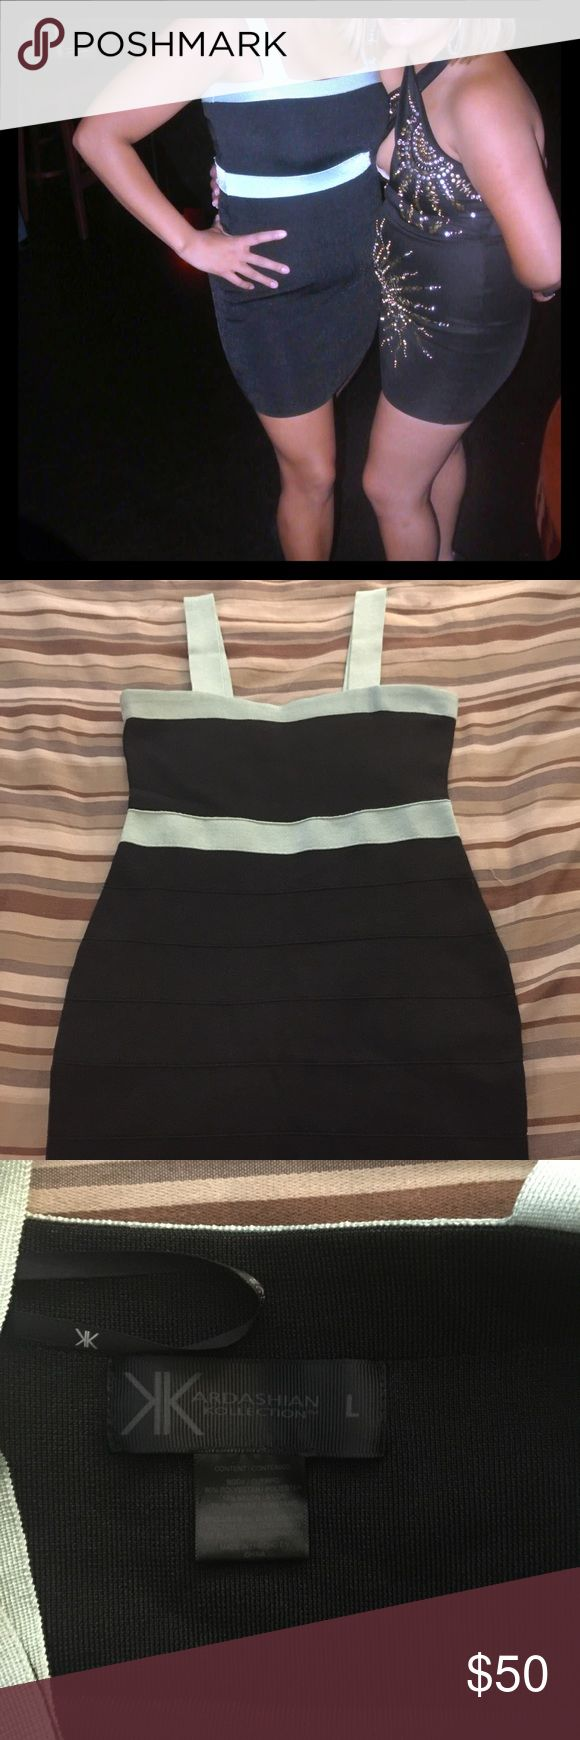 Bandage black dress I love this dress! From the Kim kardshian collection, I don't go out much anymore, but this dress will rock ur world and anyone who sees it! Great fit form and awesome turquoise detail! Kim kardashian Dresses Mini